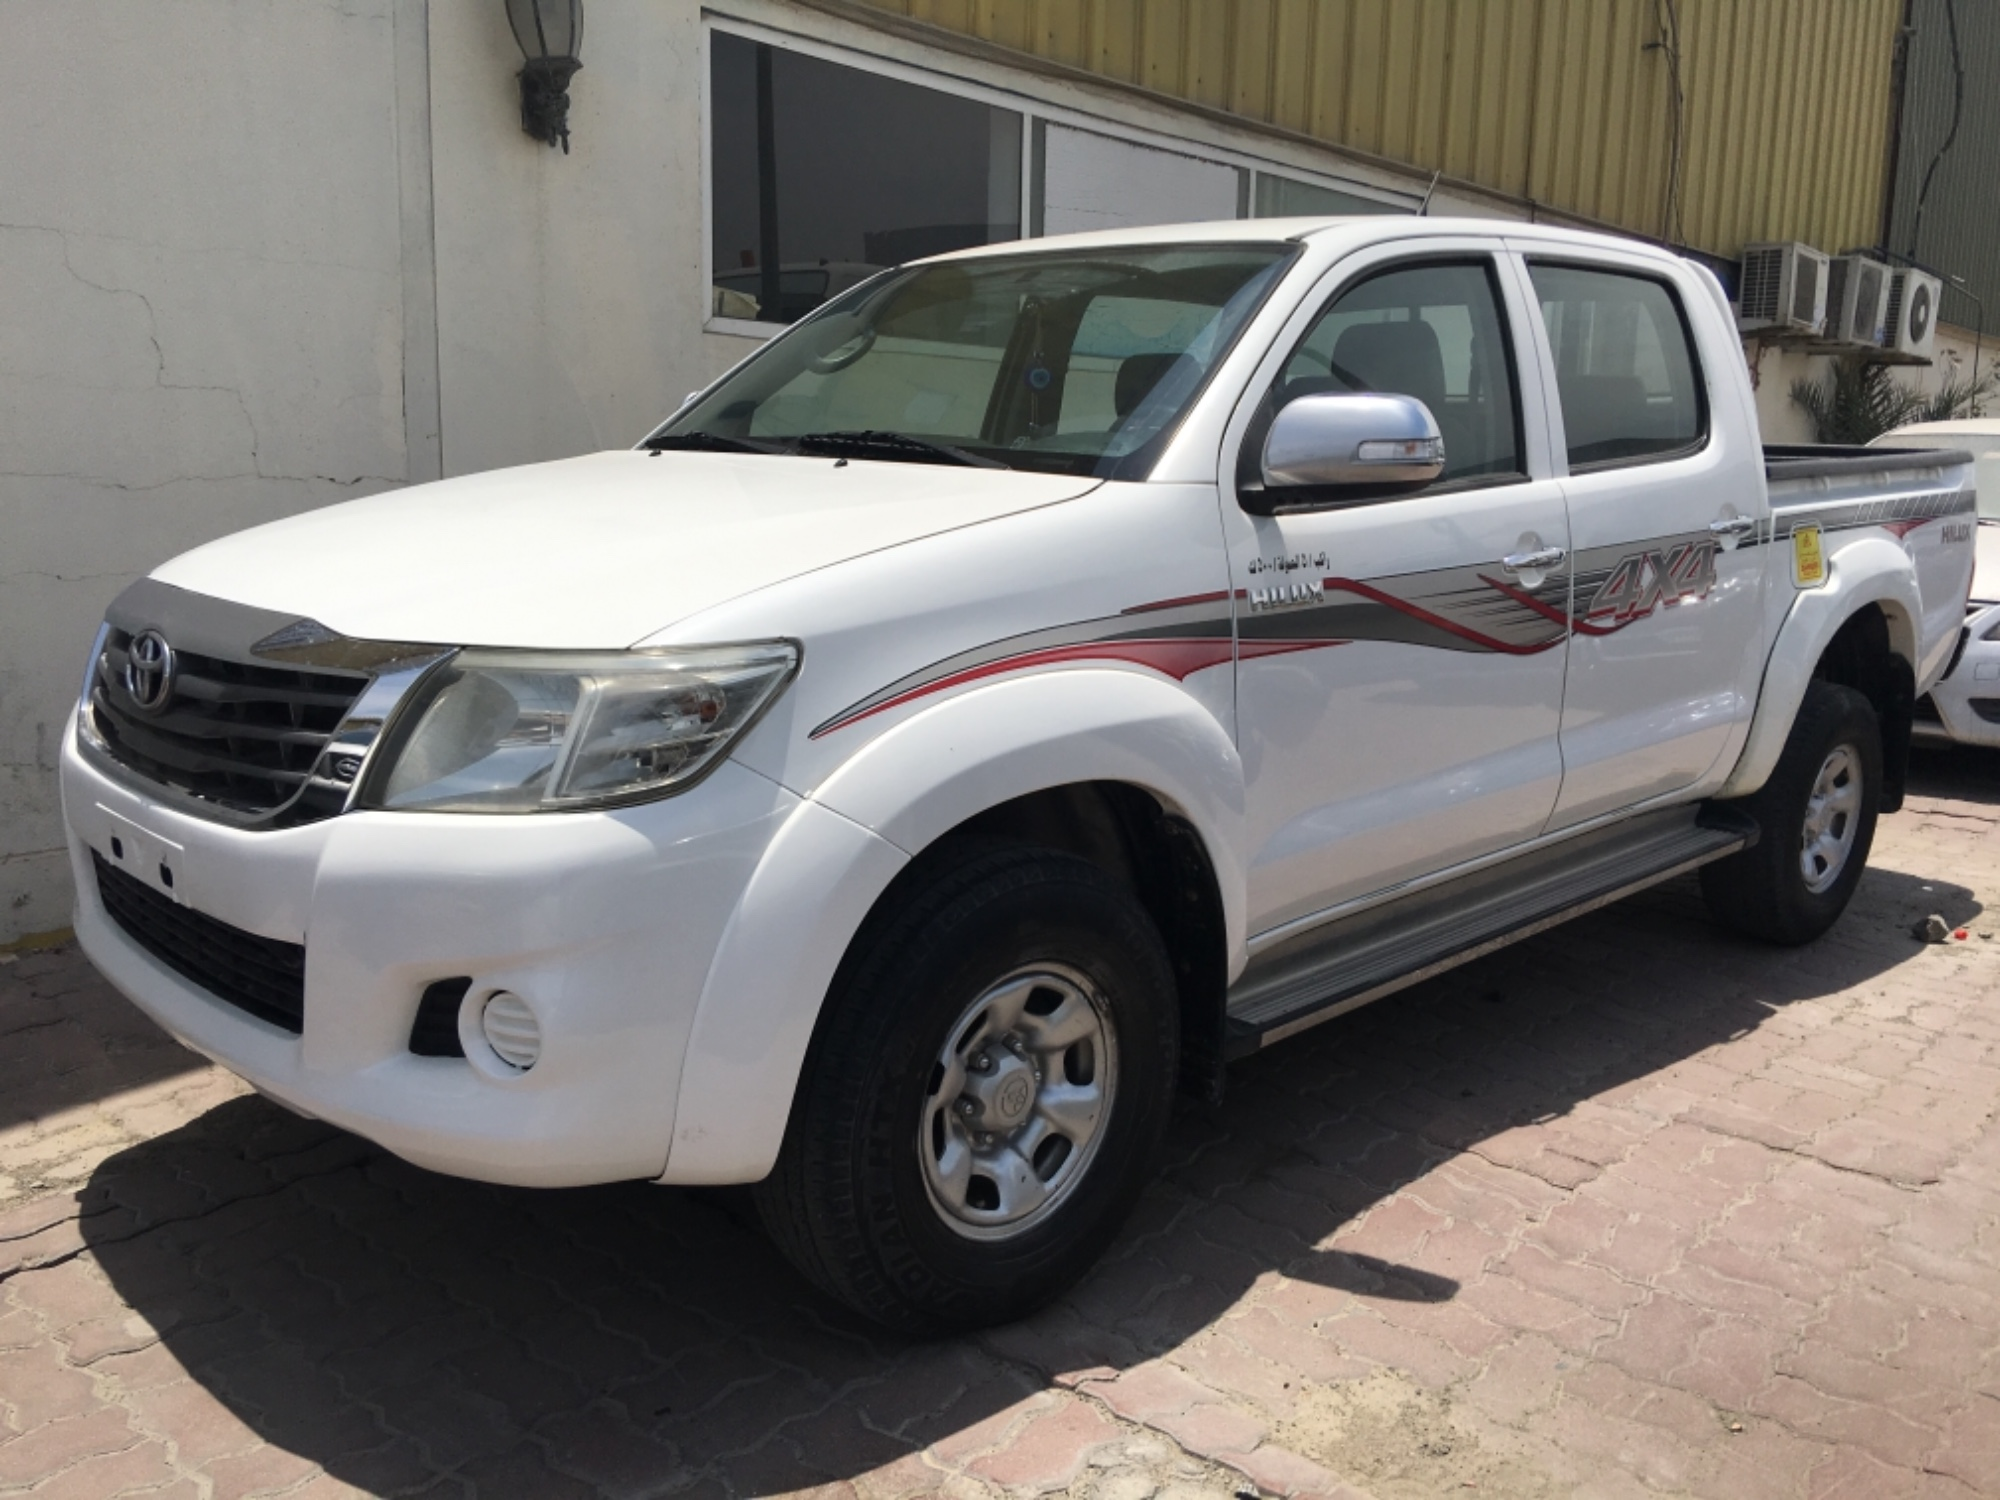 Used Toyota Hilux 225.25 Double Cab 25x25 M/T Top 2250125 (25